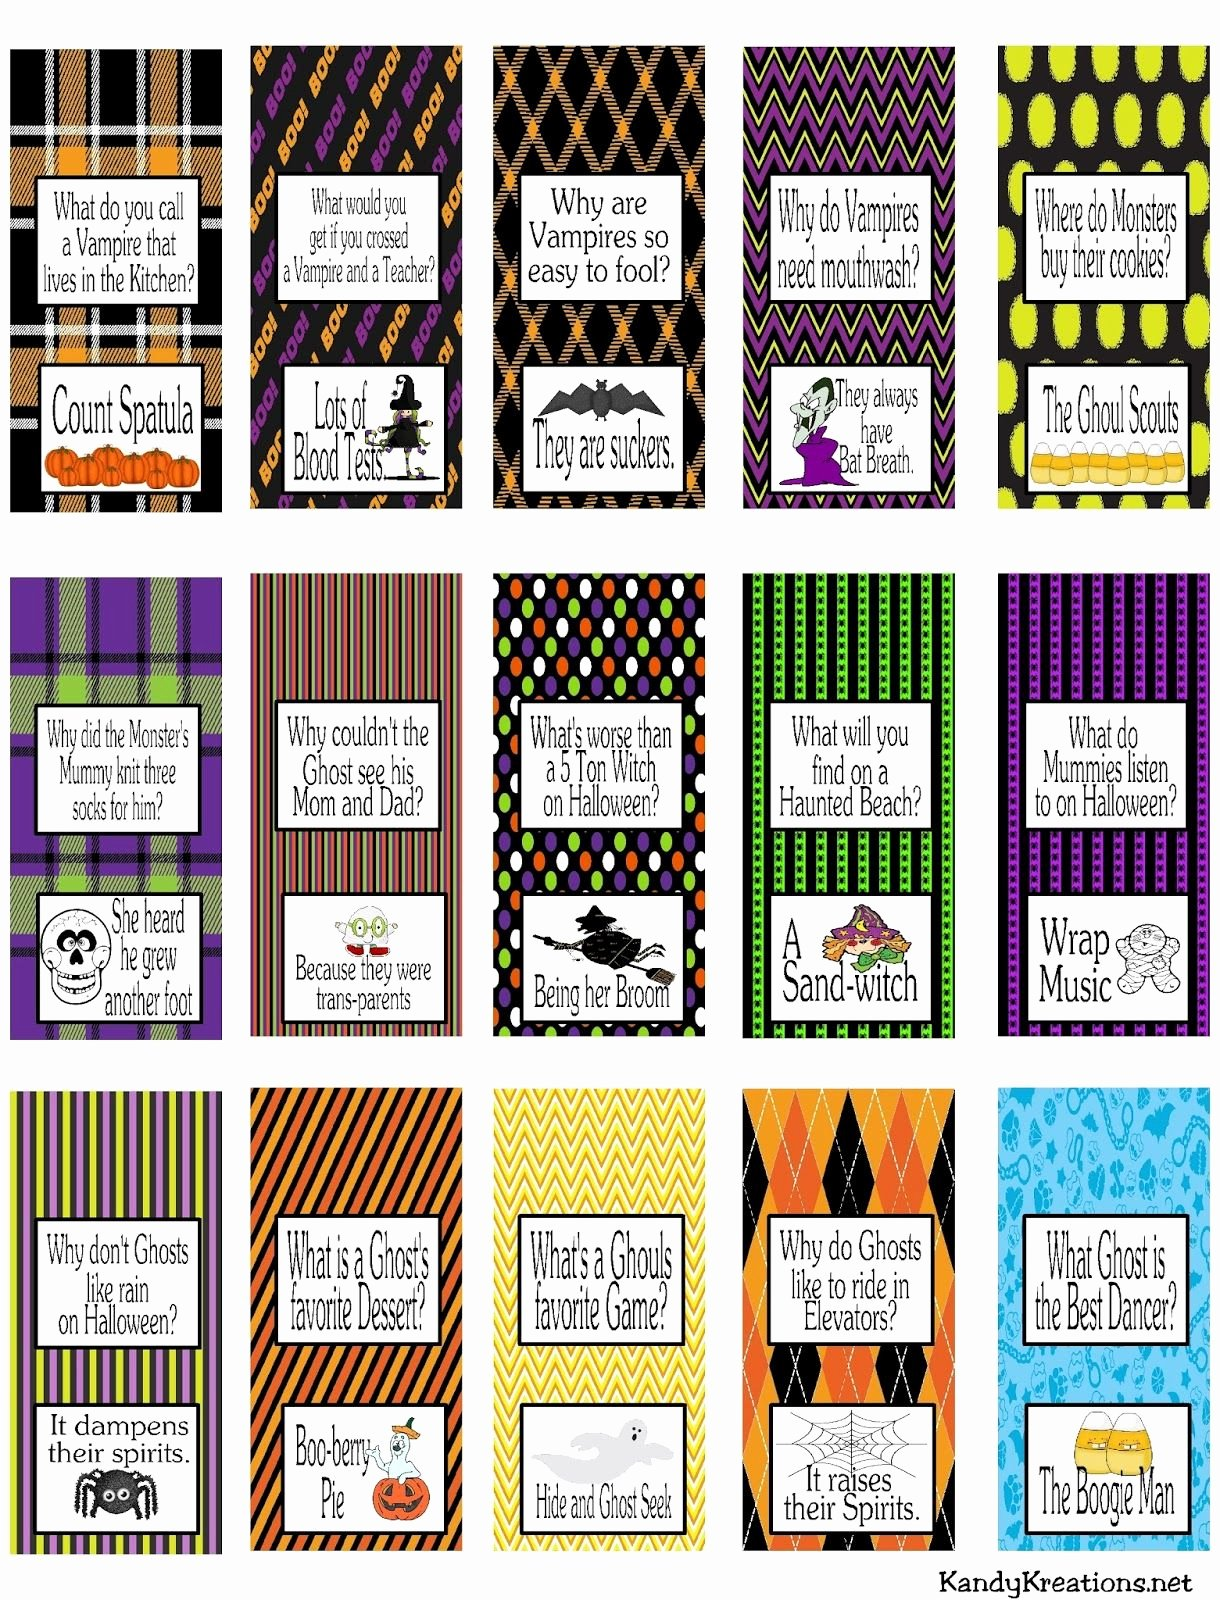 Halloween Candy Bar Wrappers Printables Elegant Halloween Joke Miniature Chocolate Wrapper Printables